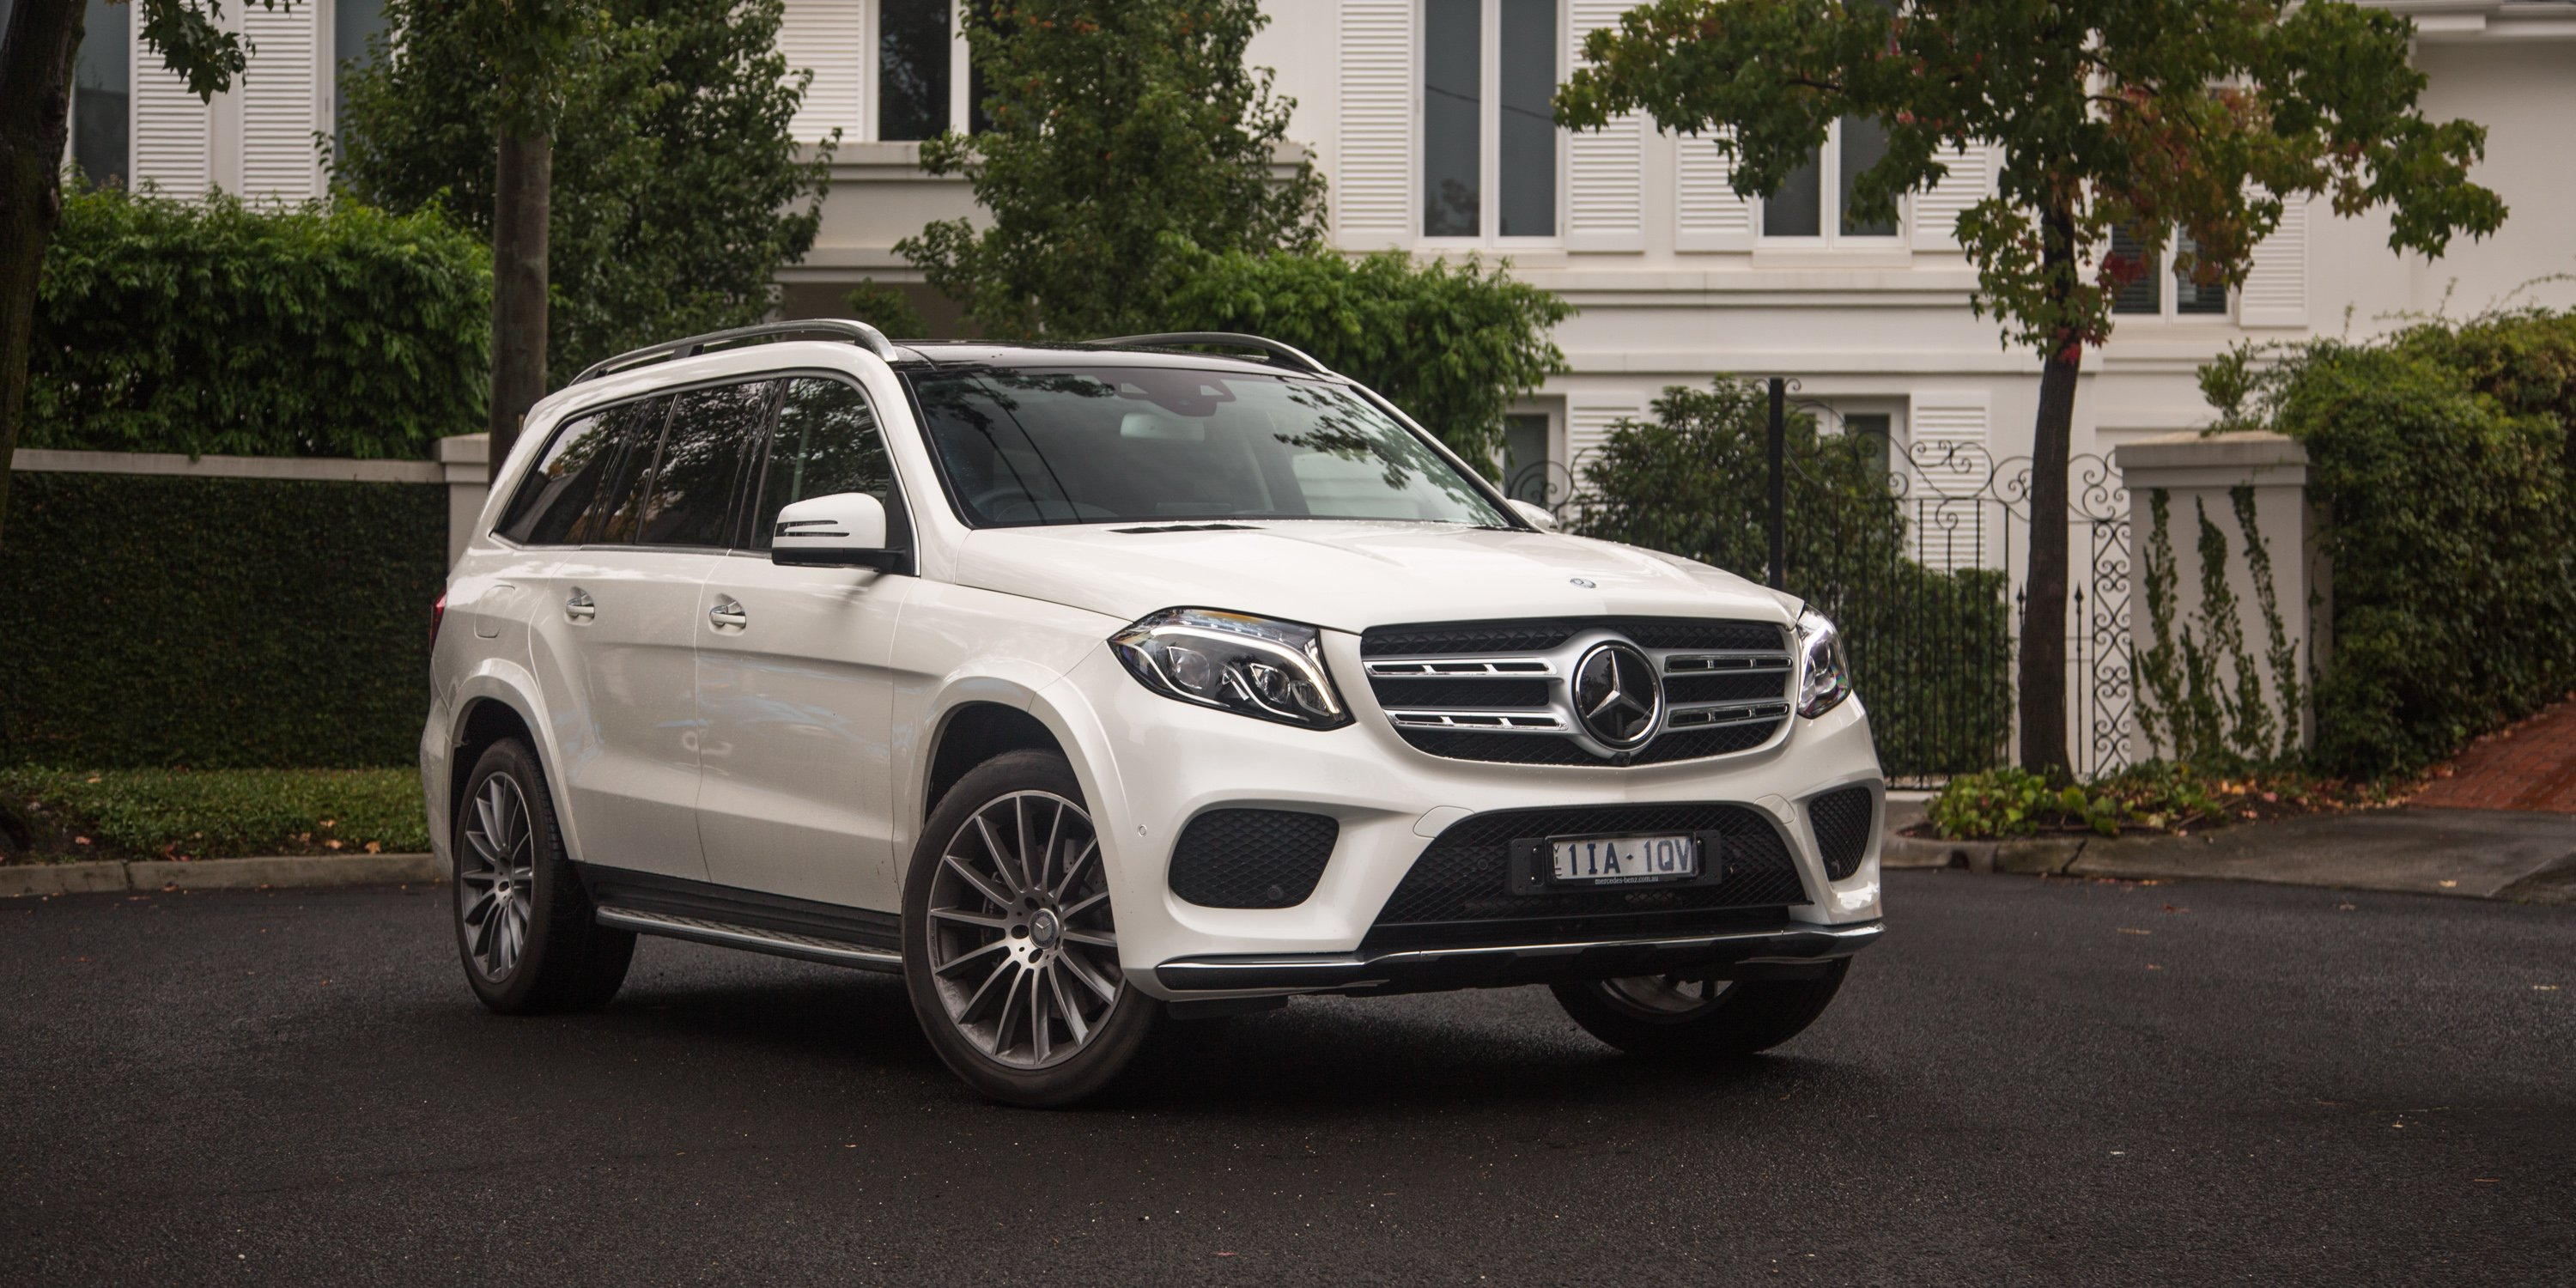 2016 mercedes benz gls review caradvice for Mercedes benz mbrace reviews